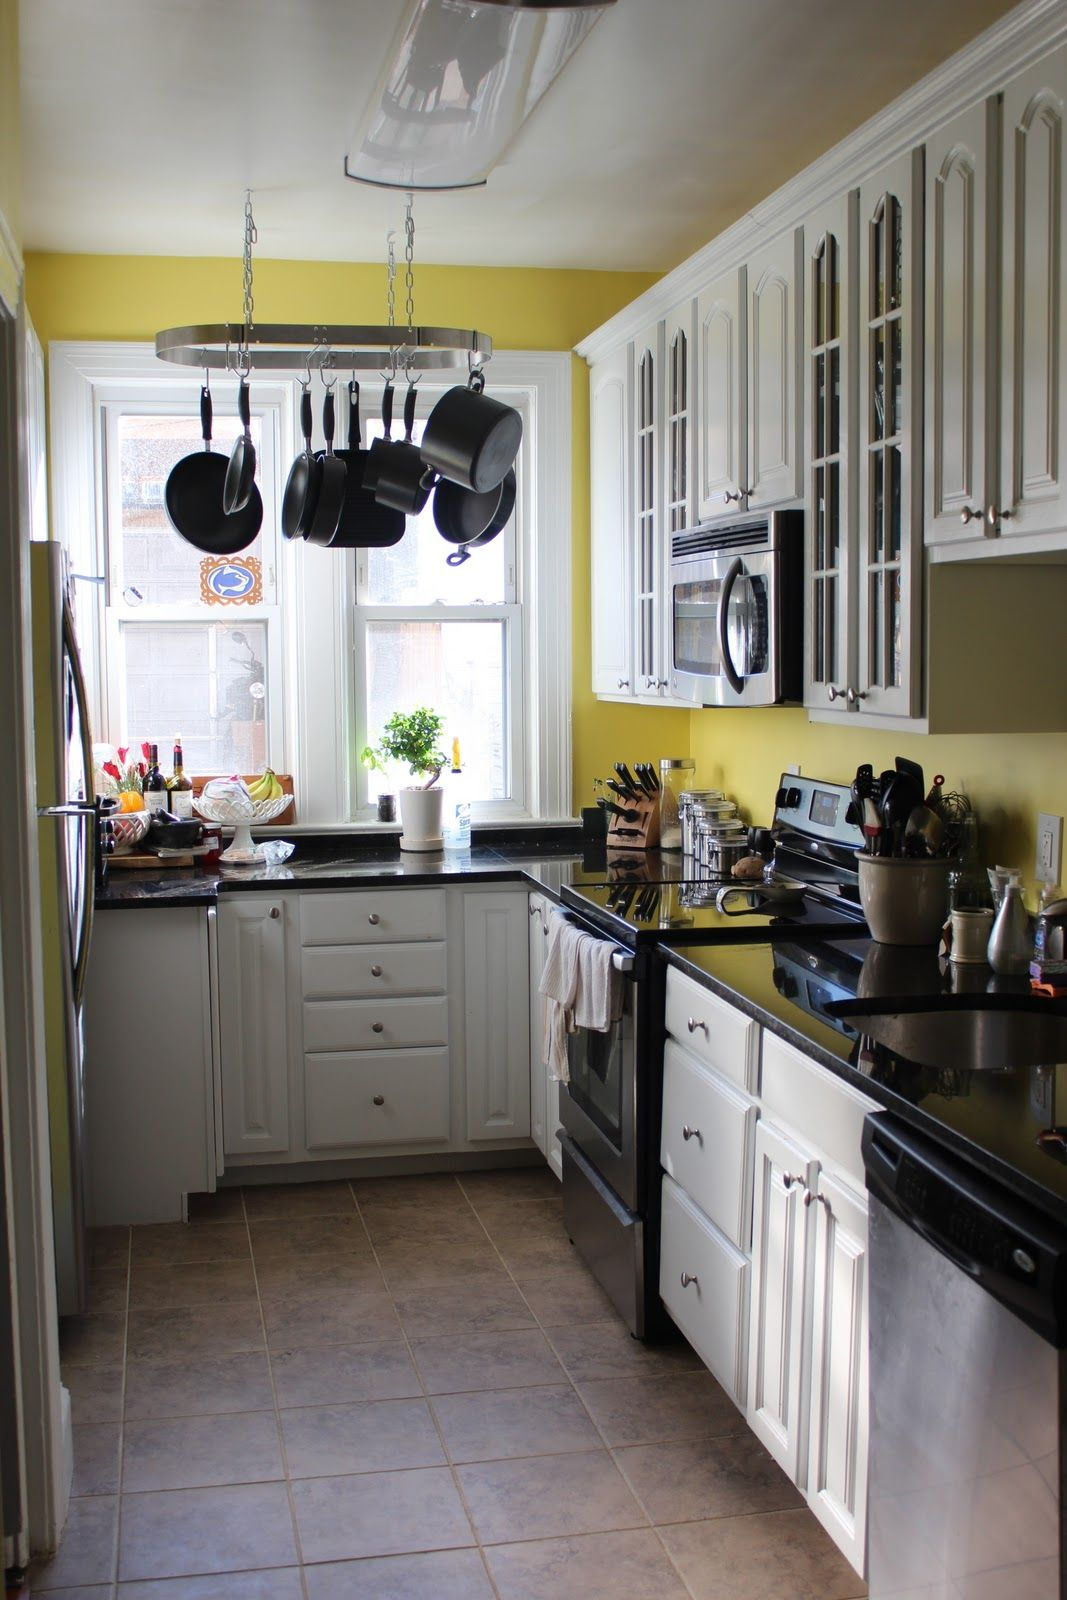 Colors For Kitchen Walls With White Cabinets Pinning This To Show Me I Will Not Like This Yellow